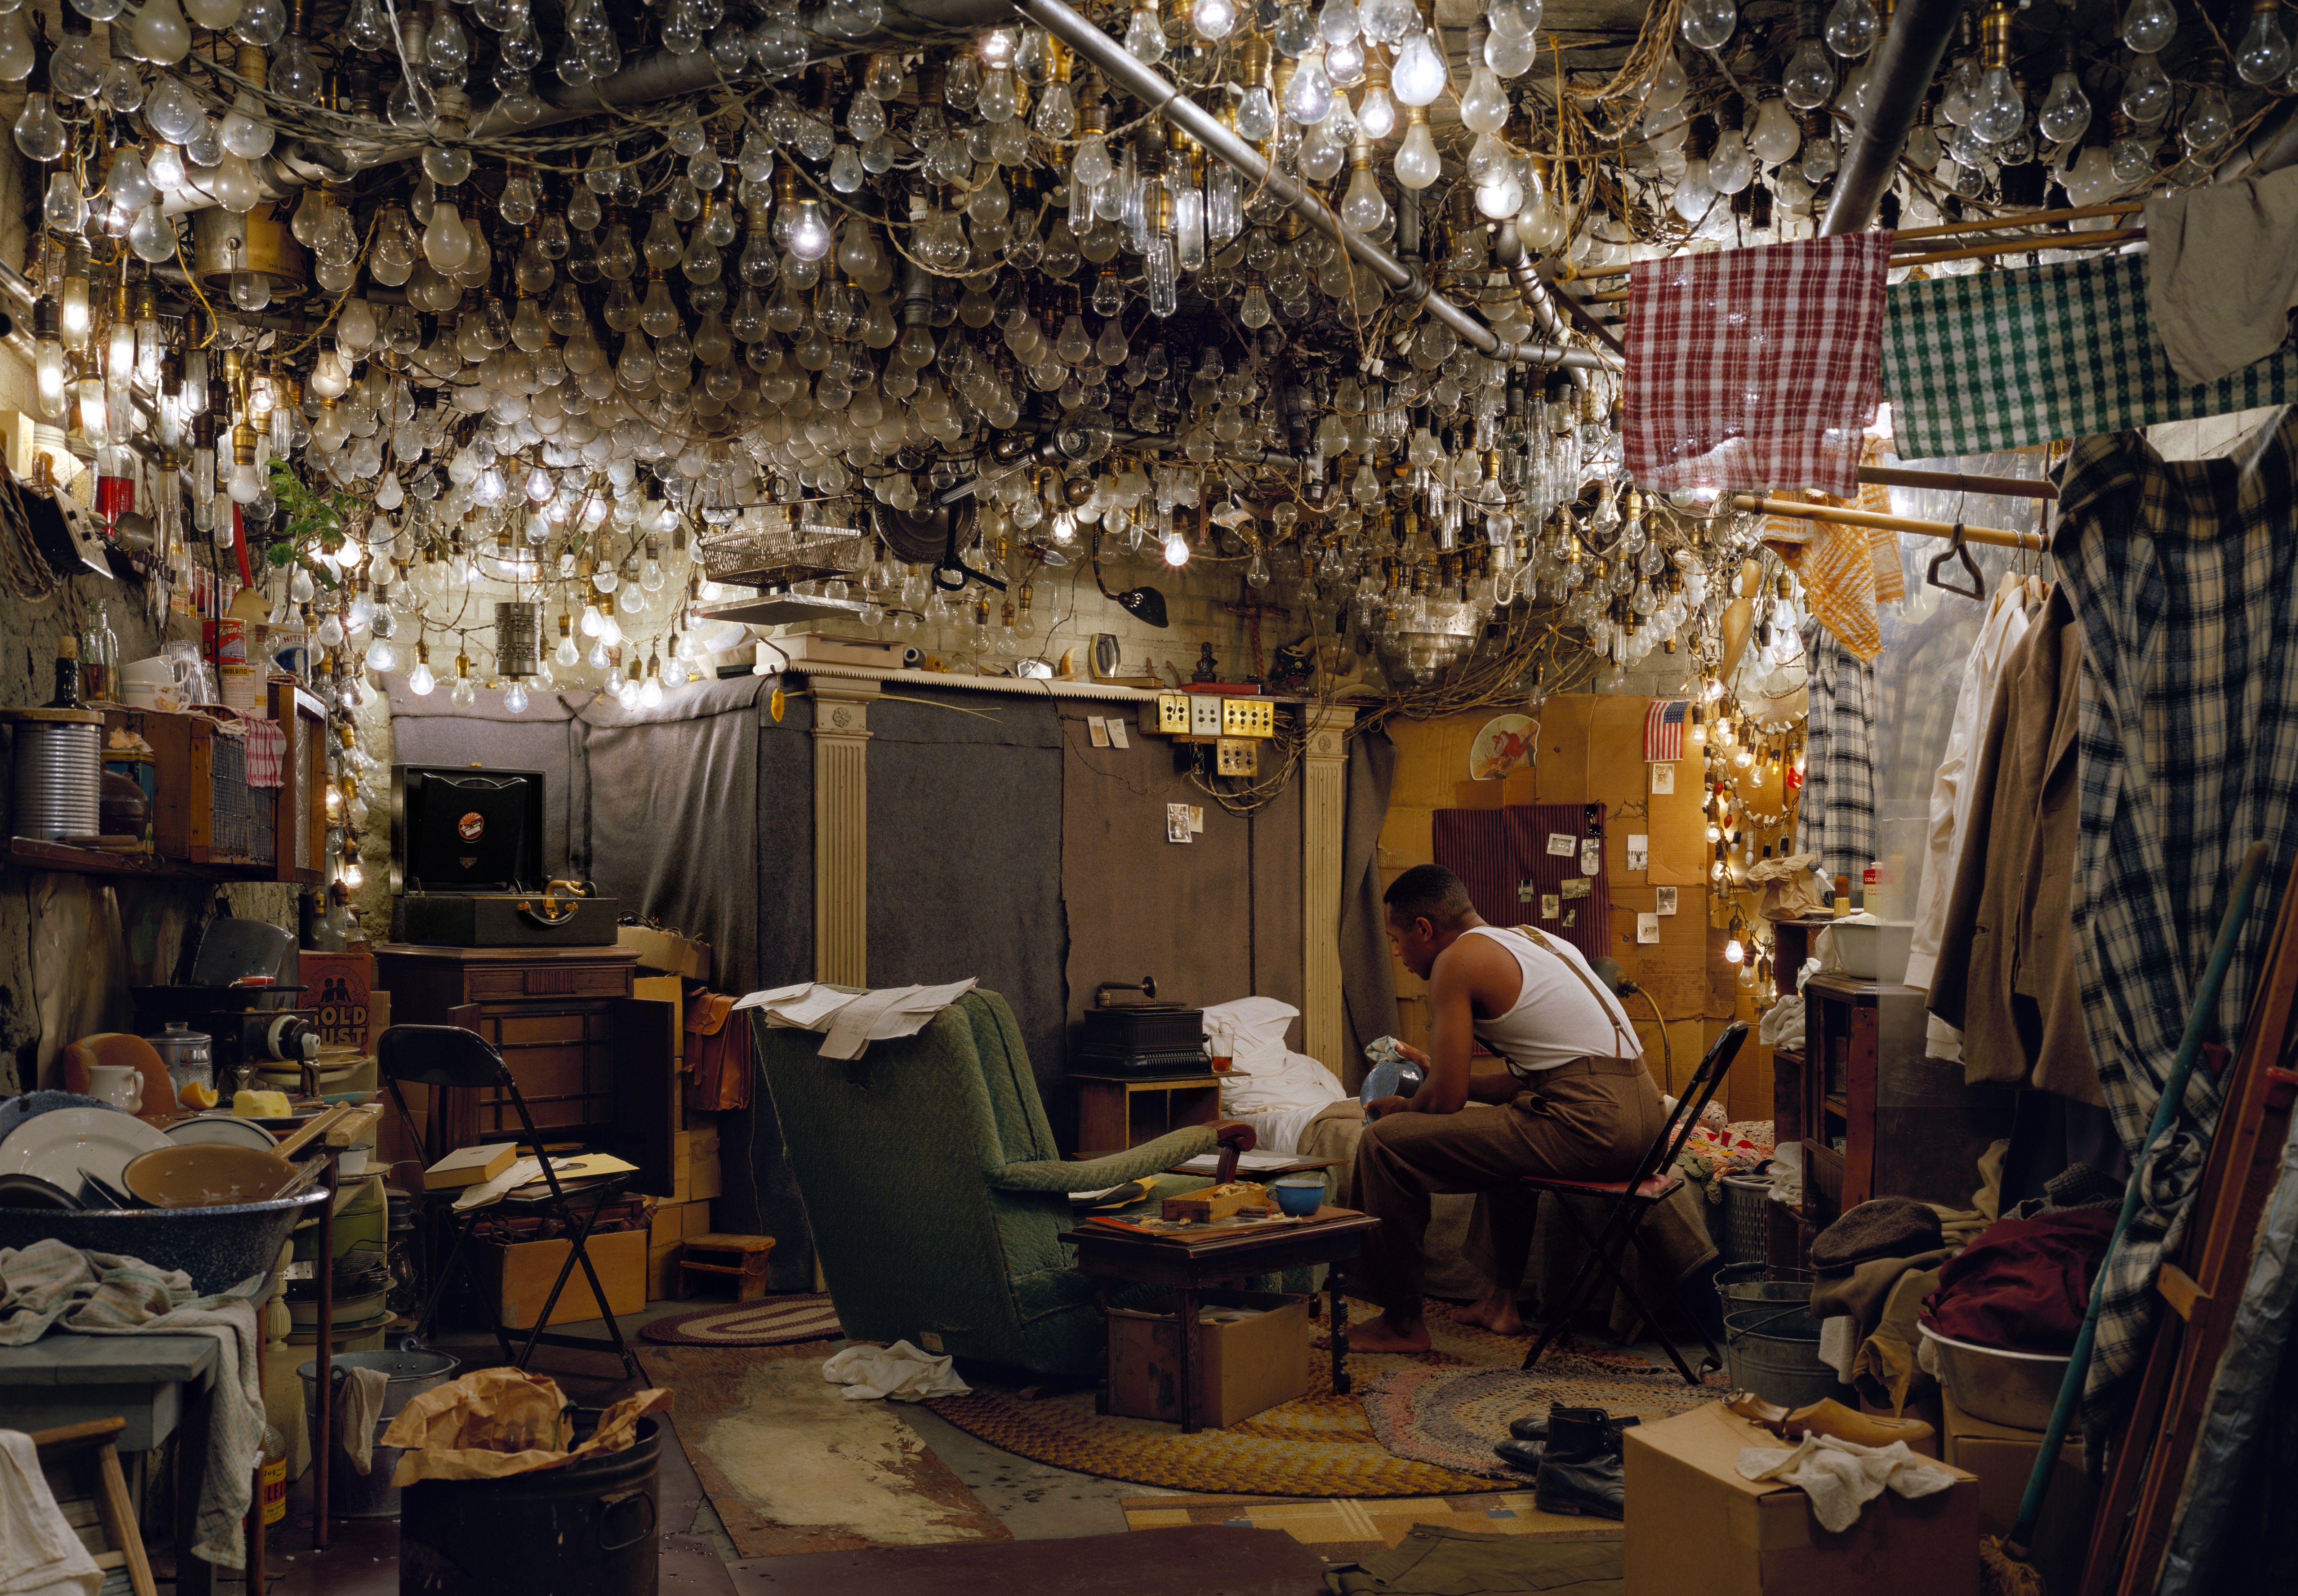 """Jeff Wall, After """"Invisible Man"""" by Ralph Ellison, the Prologue, 1999-2001 Transparency in lightbox, 174 x 250,5 cm courtesy the artist © Jeff Wall"""